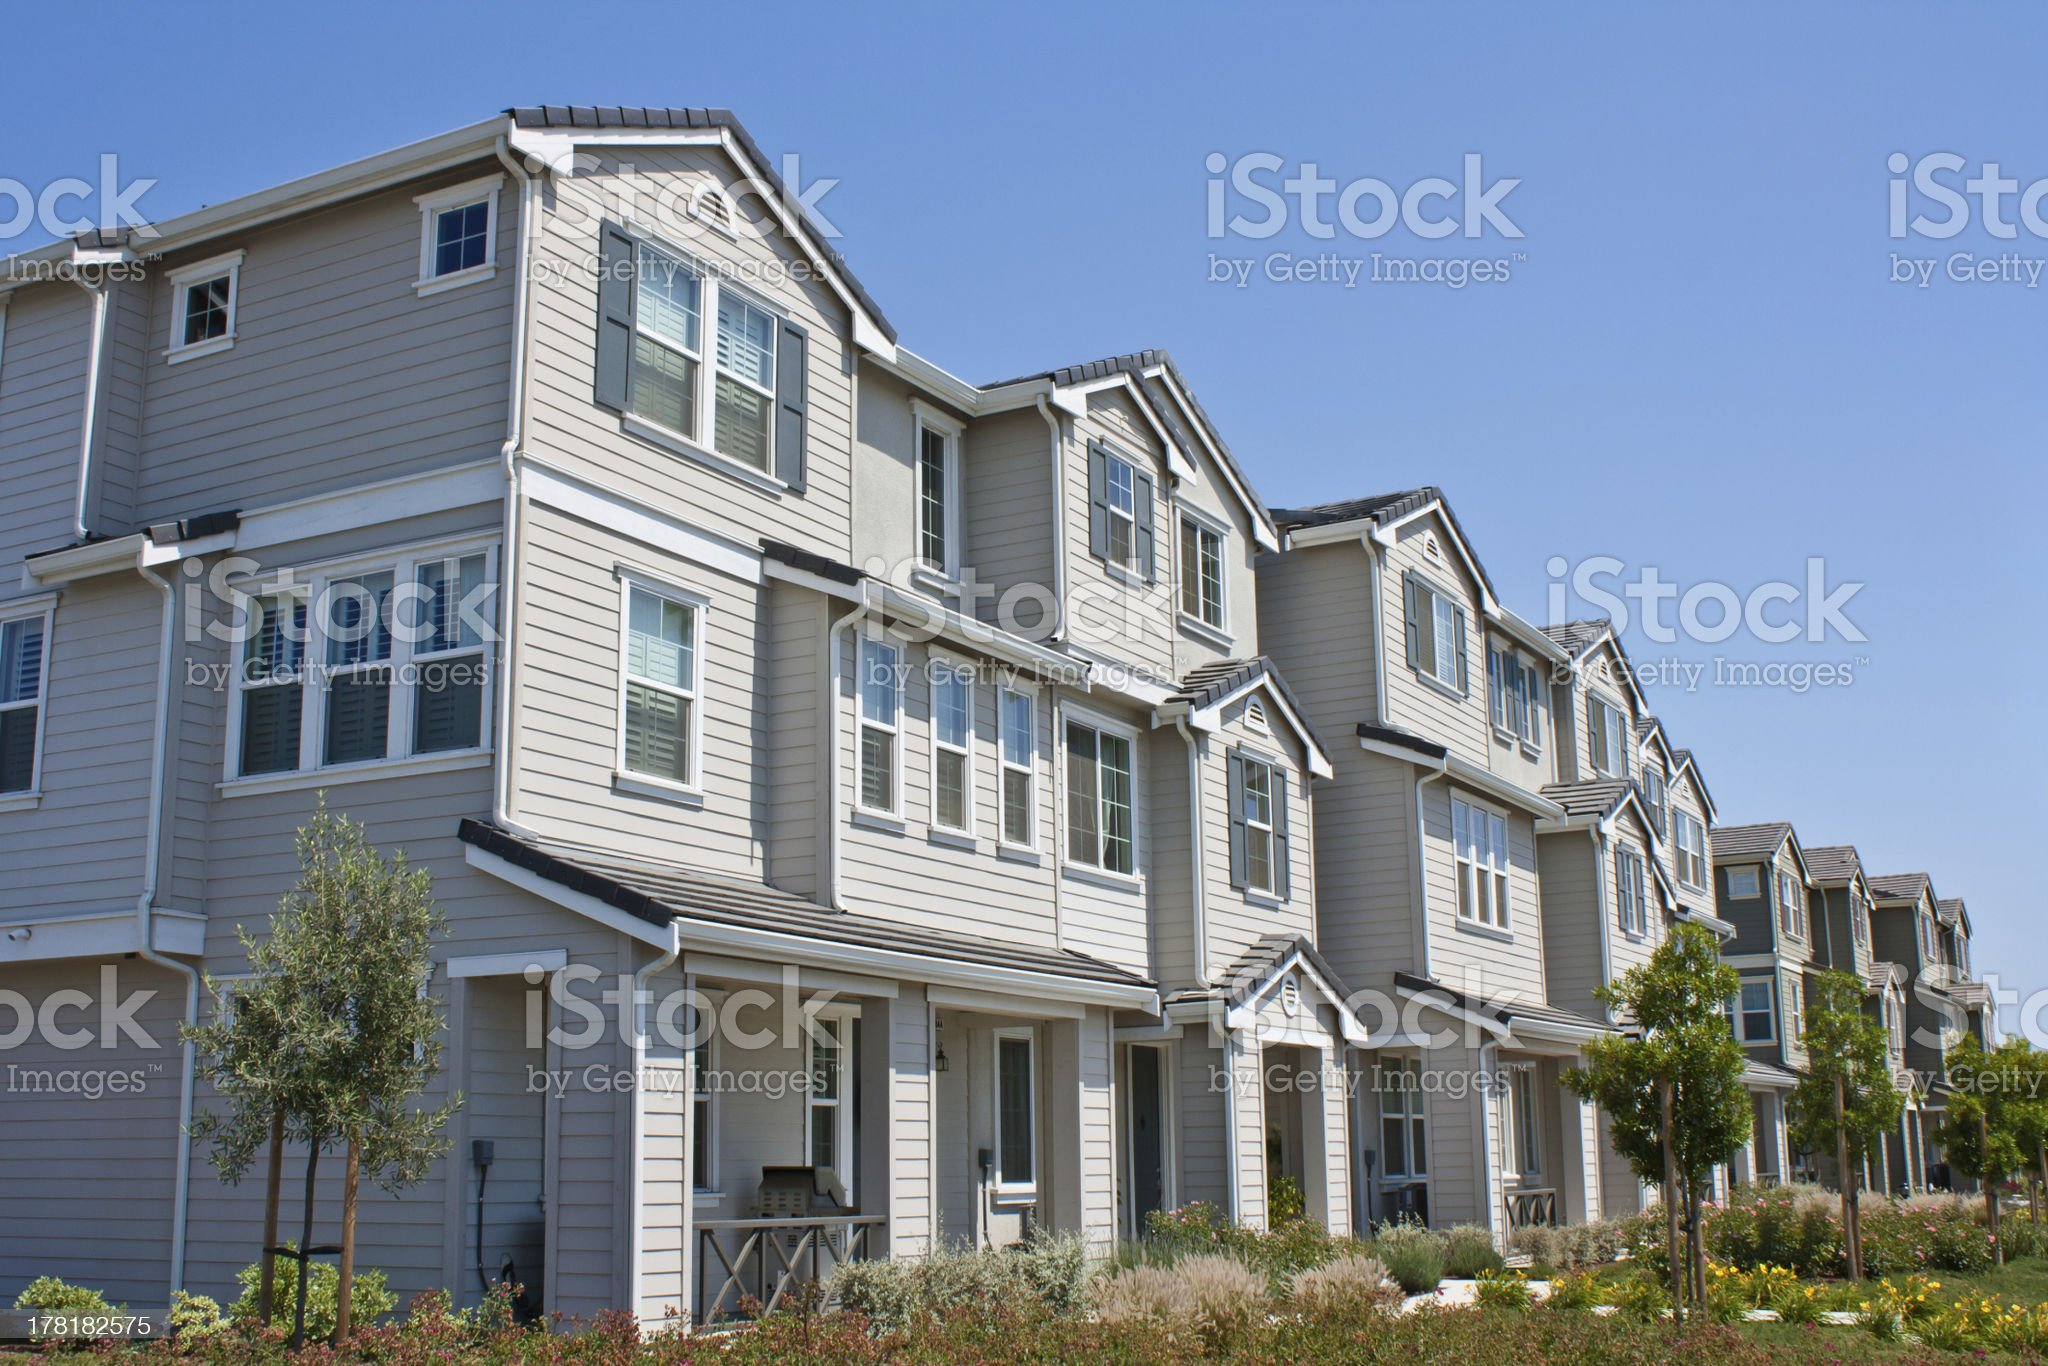 Row of three story town homes with landscaped lawns royalty-free stock photo